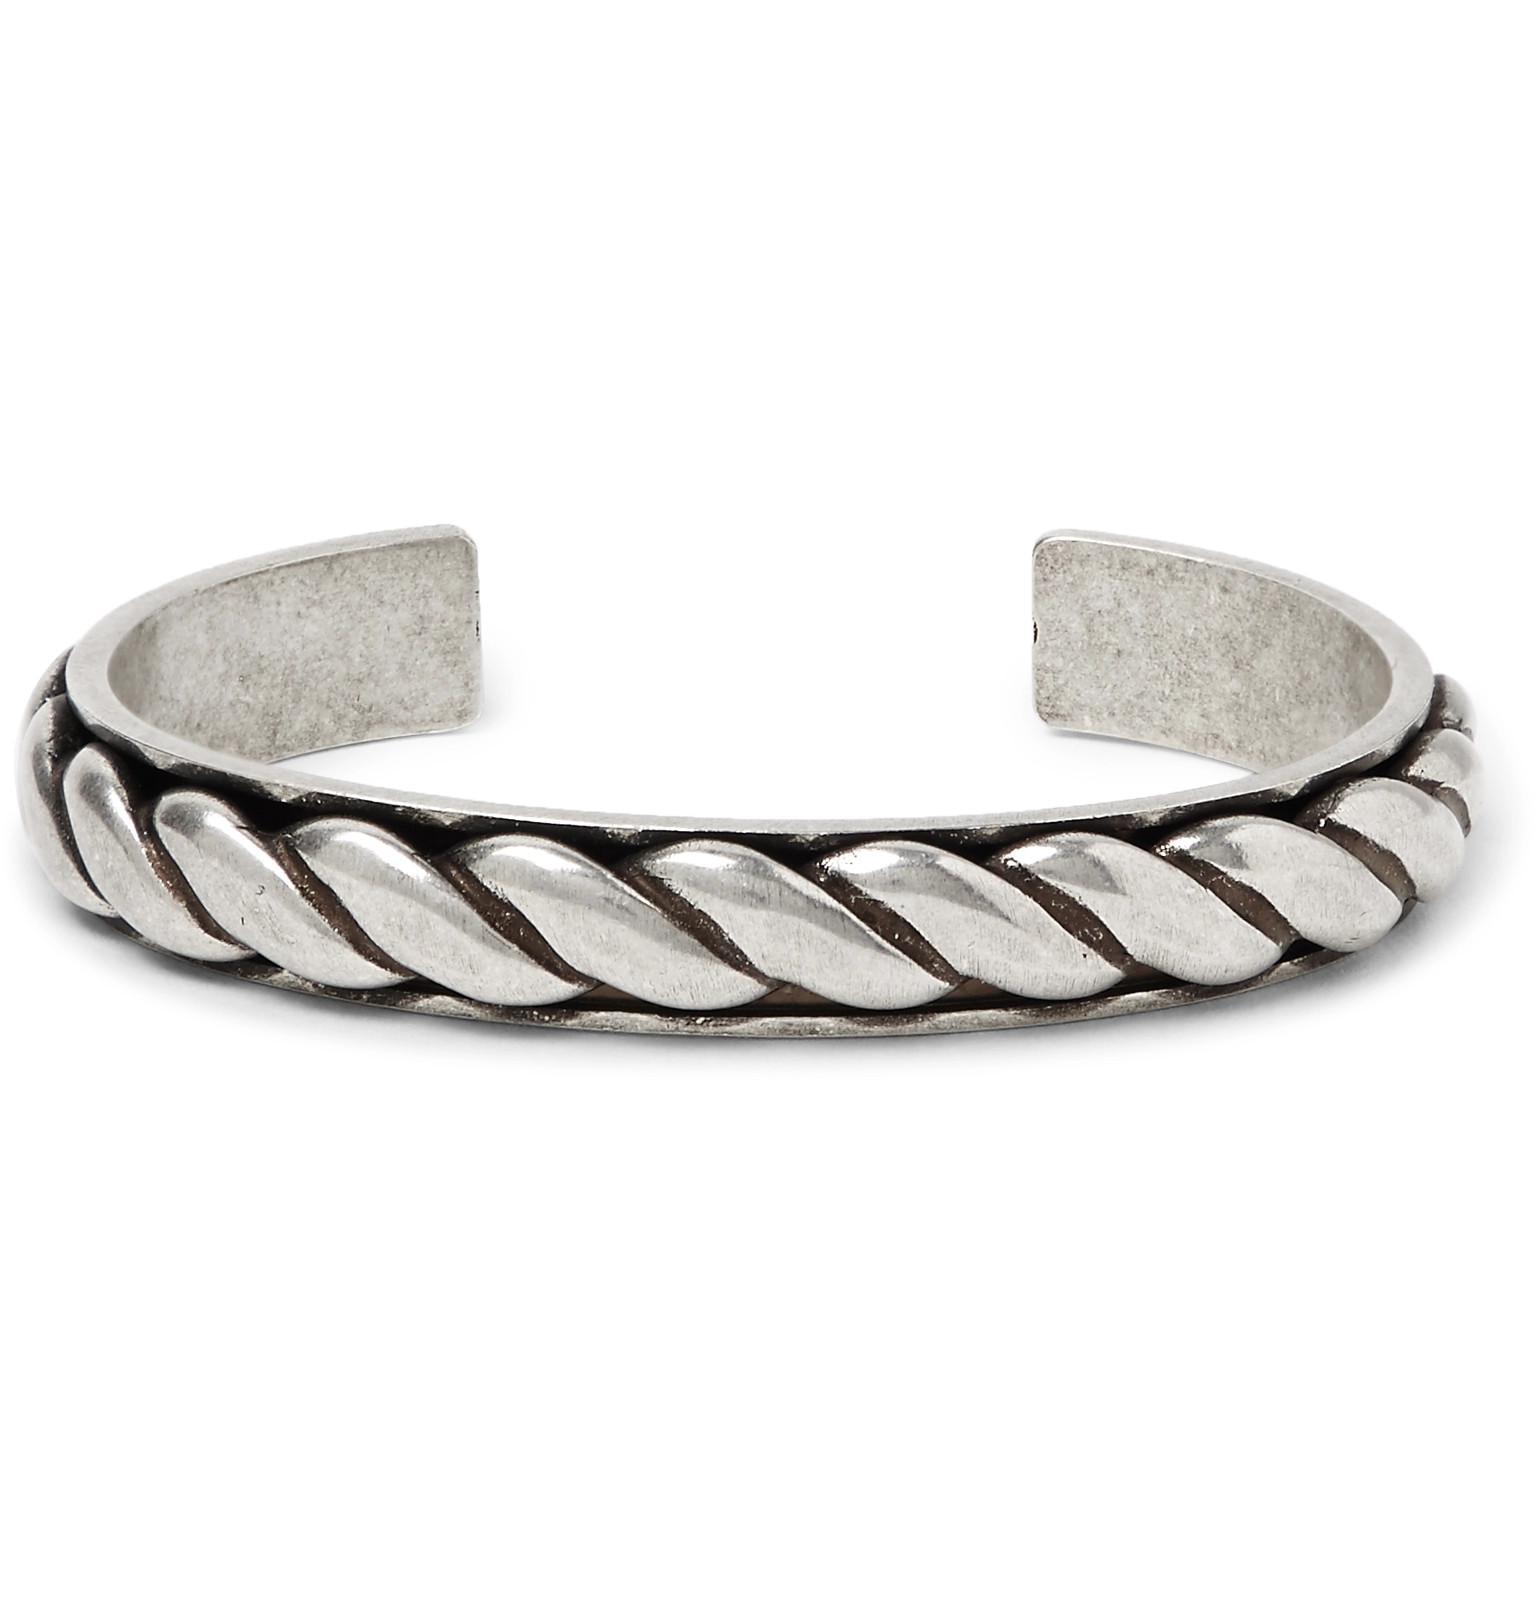 10c5bbf1631 Saint Laurent Burnished Silver-tone Cuff in Metallic for Men - Lyst